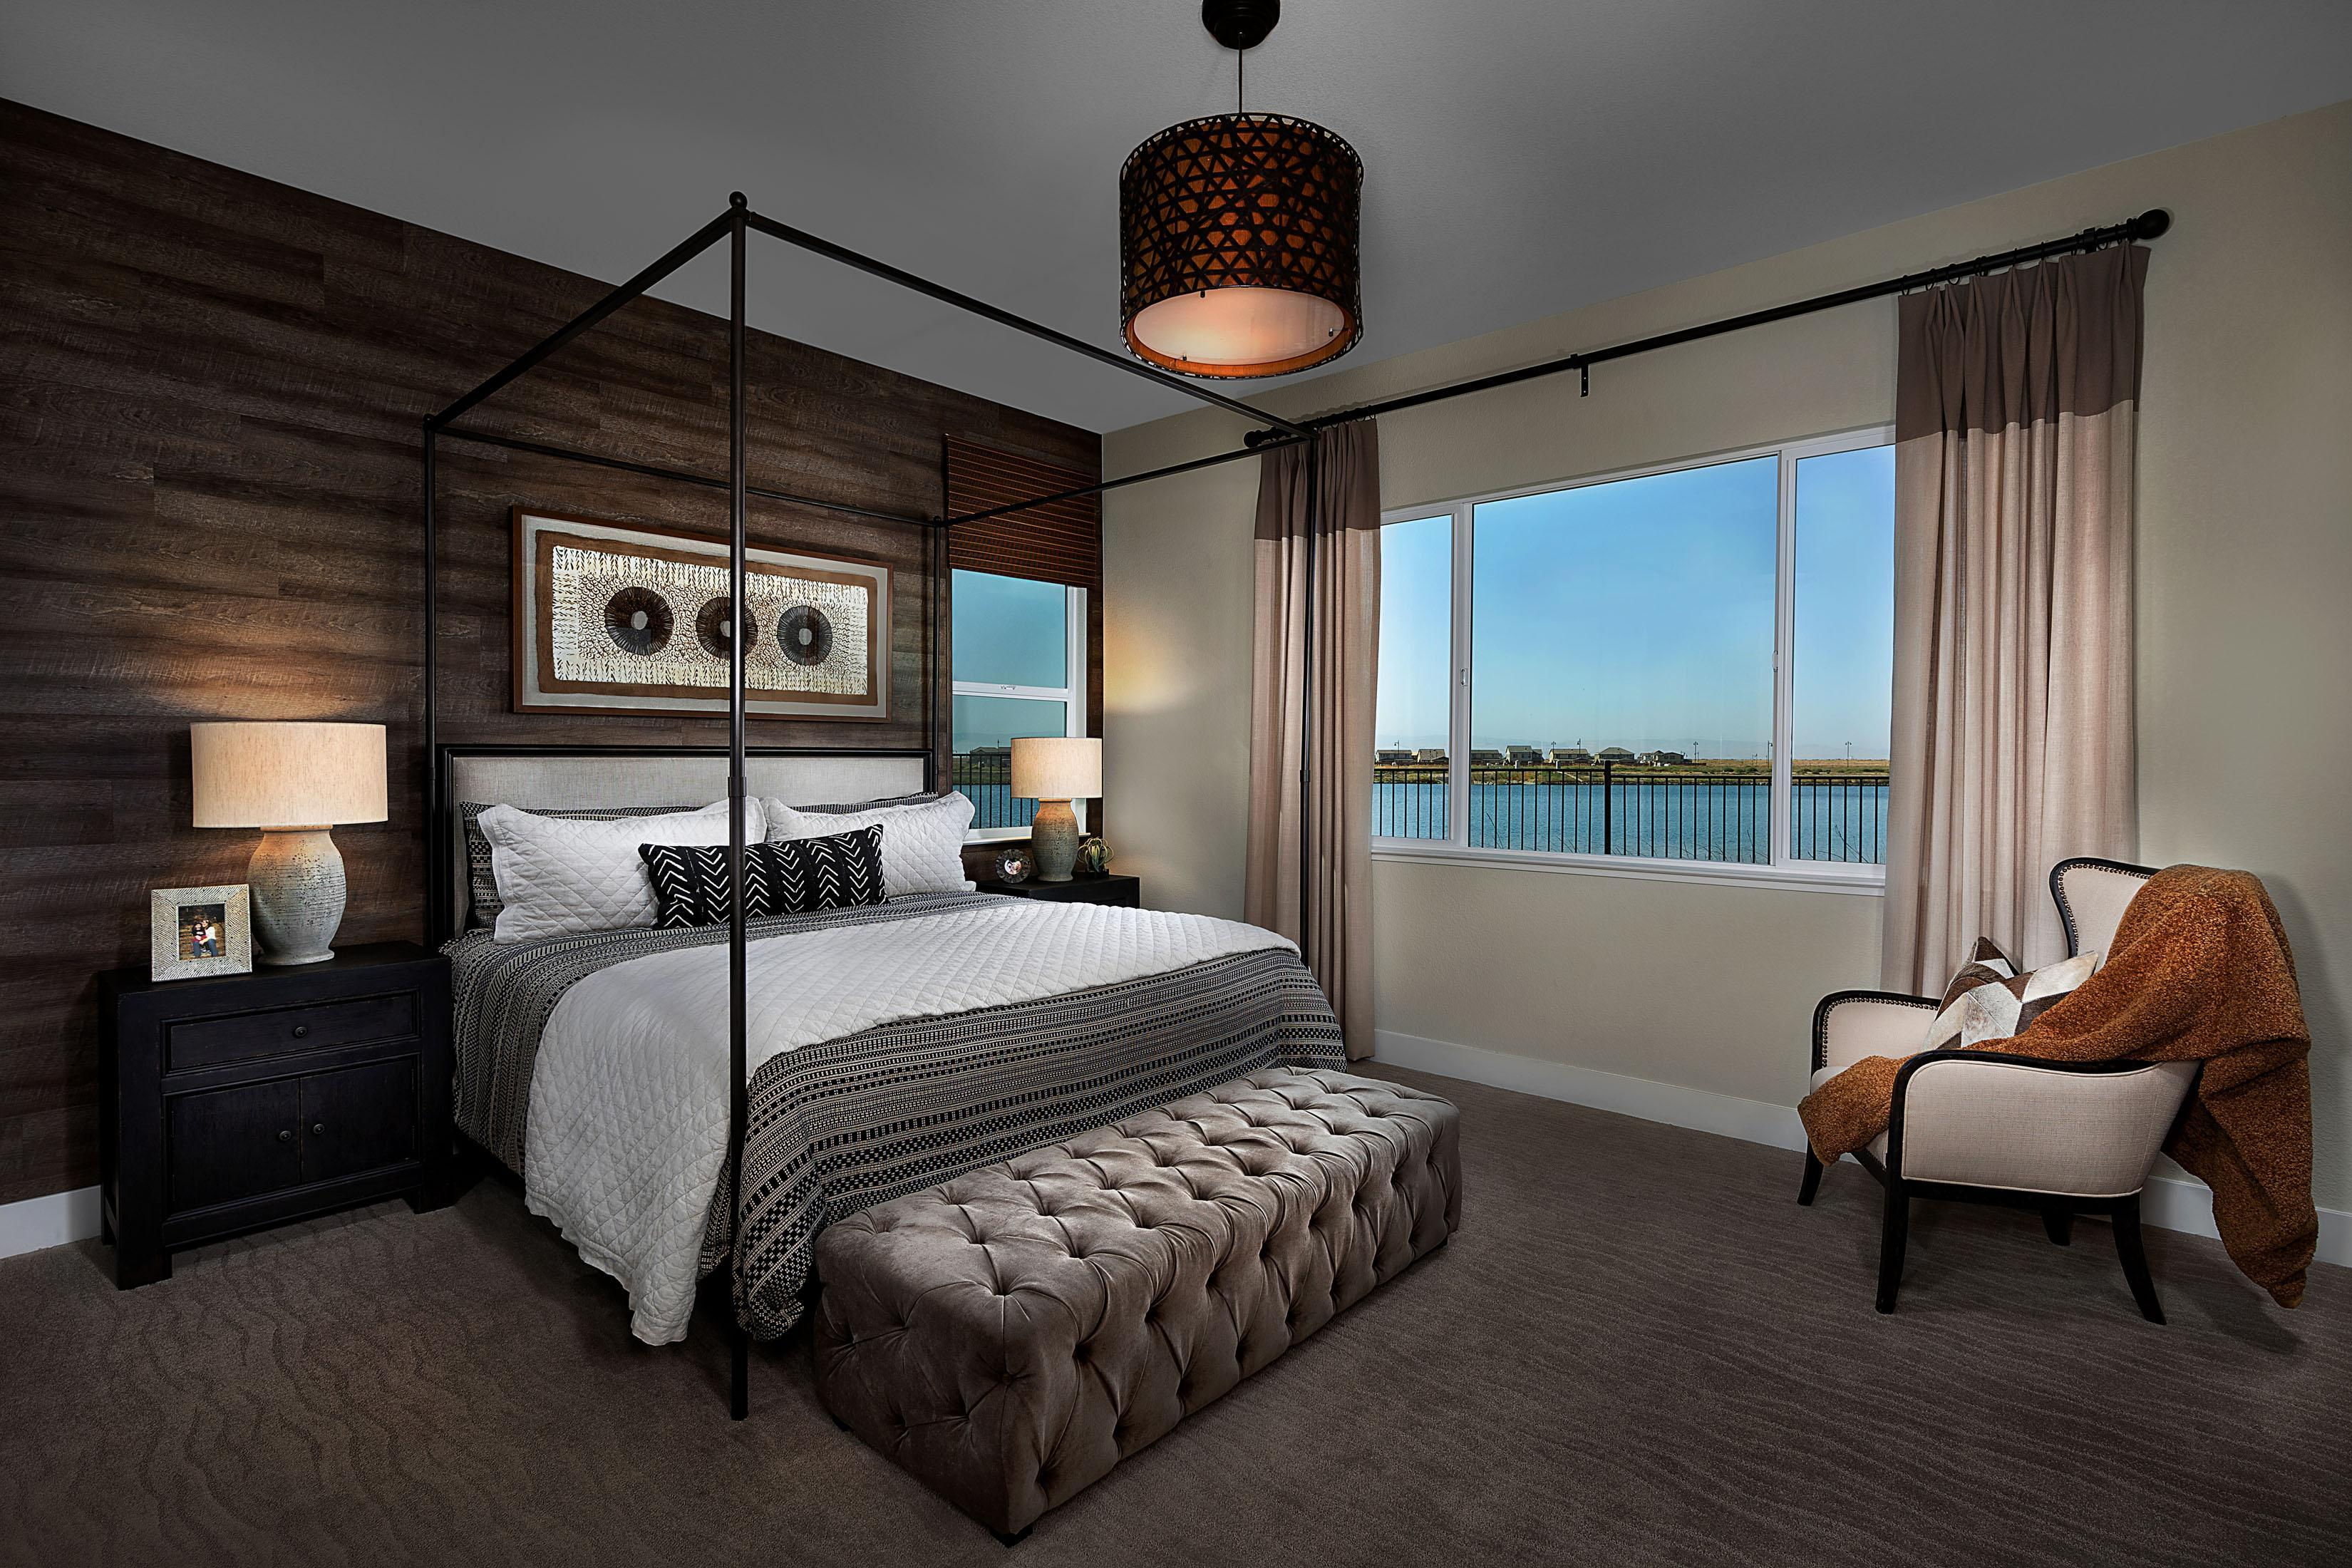 Bedroom featured in the Newport- Residence 1 By Kiper Homes in Stockton-Lodi, CA